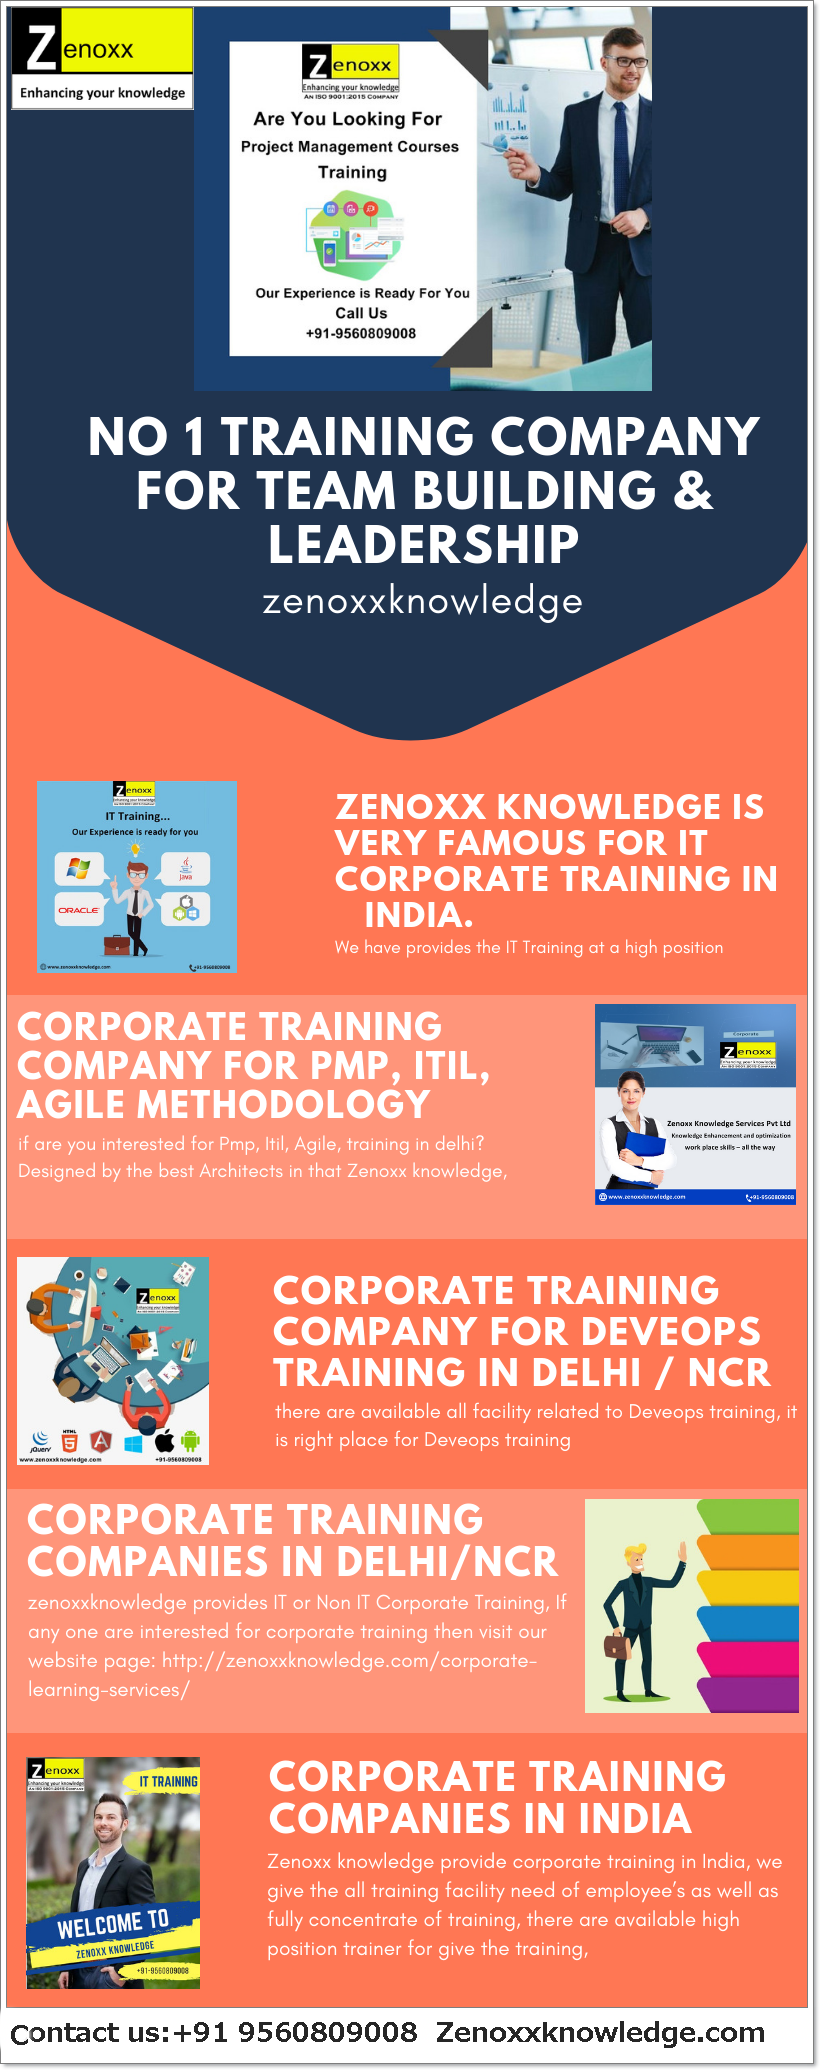 Pin By Zenoxx Knowledge On Corporate Training Companies In Delhi Ncr Data Science Project Management Courses Machine Learning